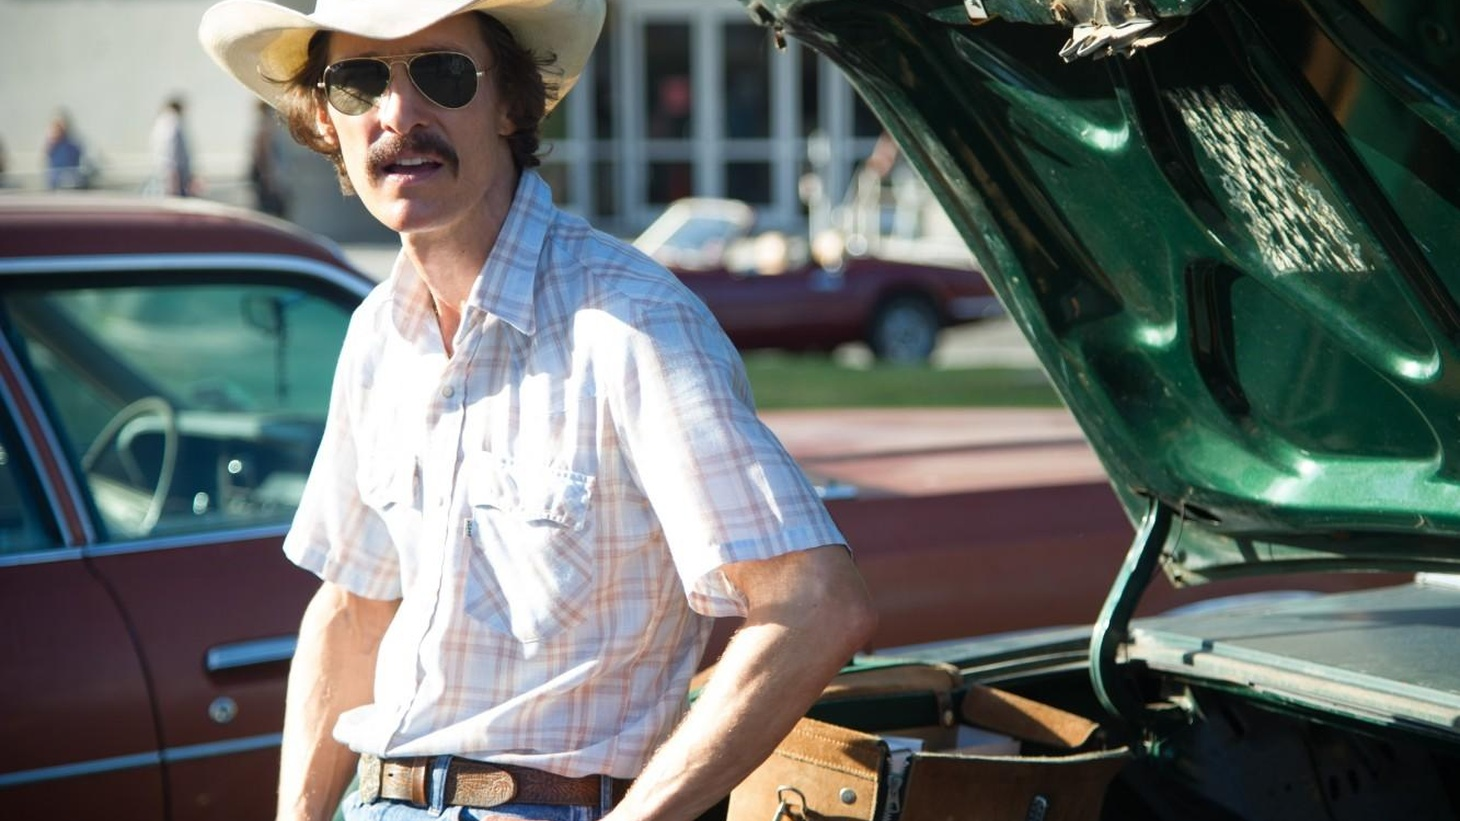 """Dallas Buyers Club"" is a showcase of fine performances, some of them distinguished by their restraint."